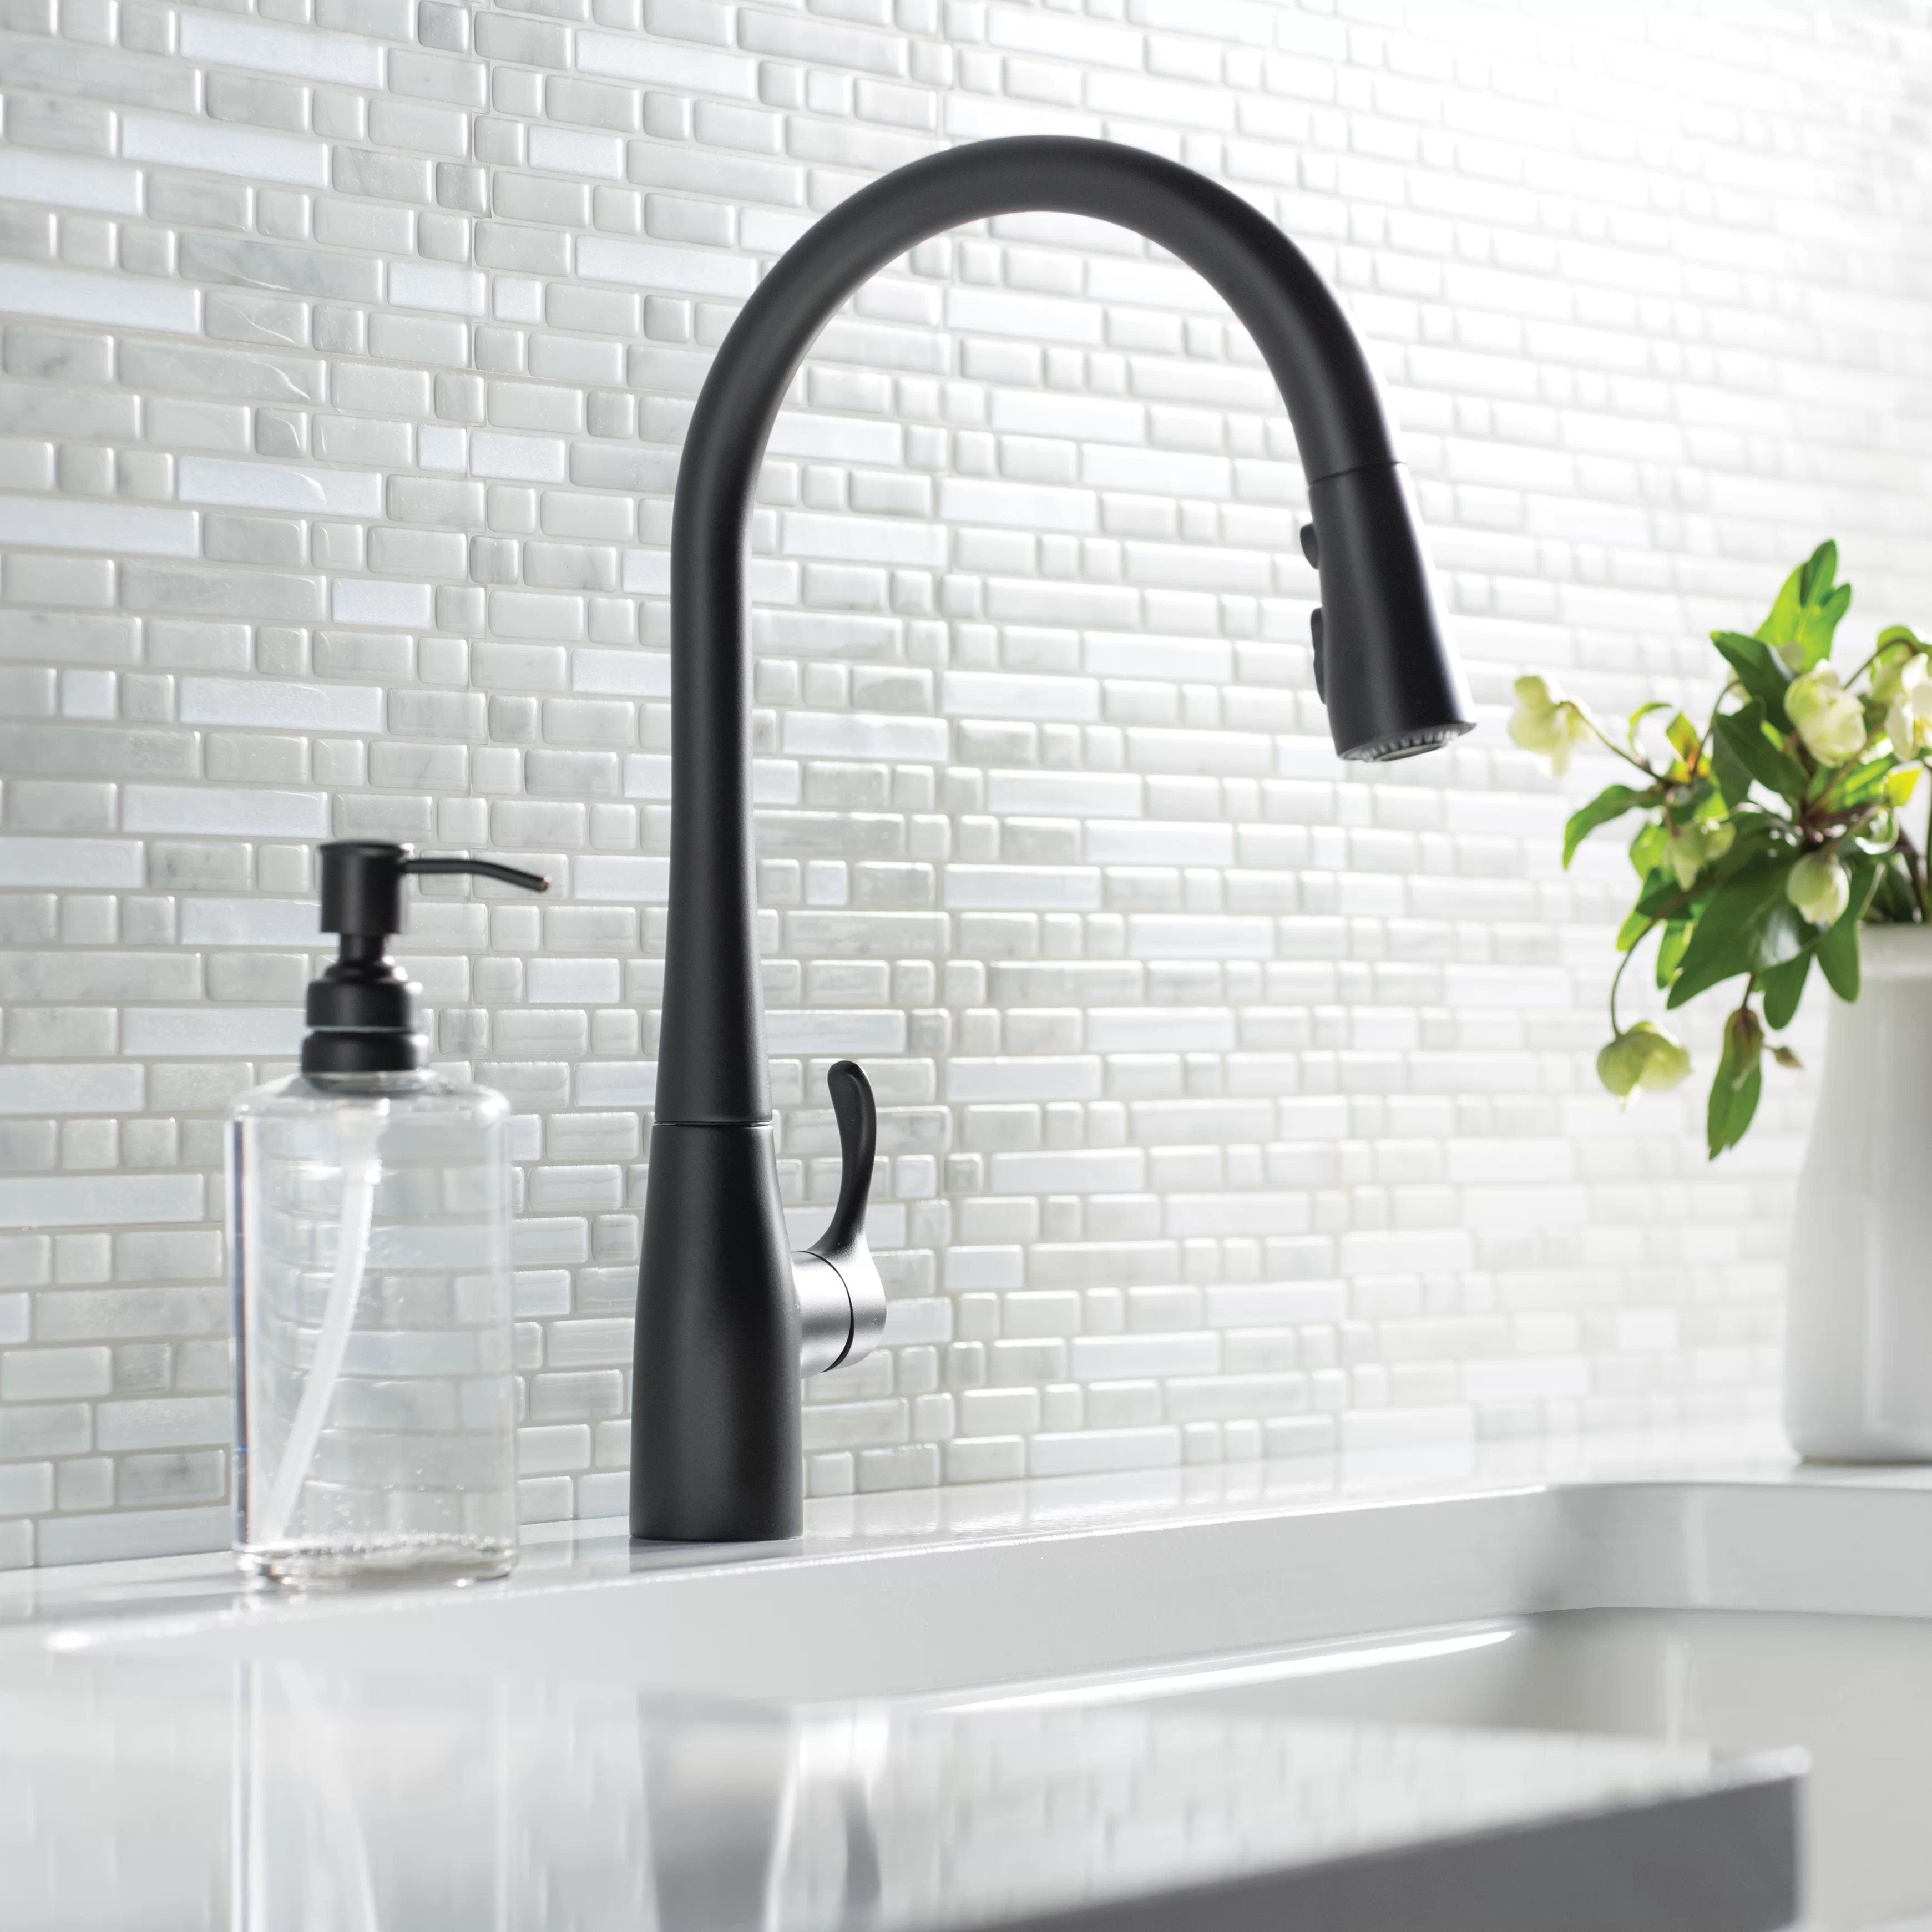 simplice pull down single handle kitchen faucet with sweep spray and docknetik